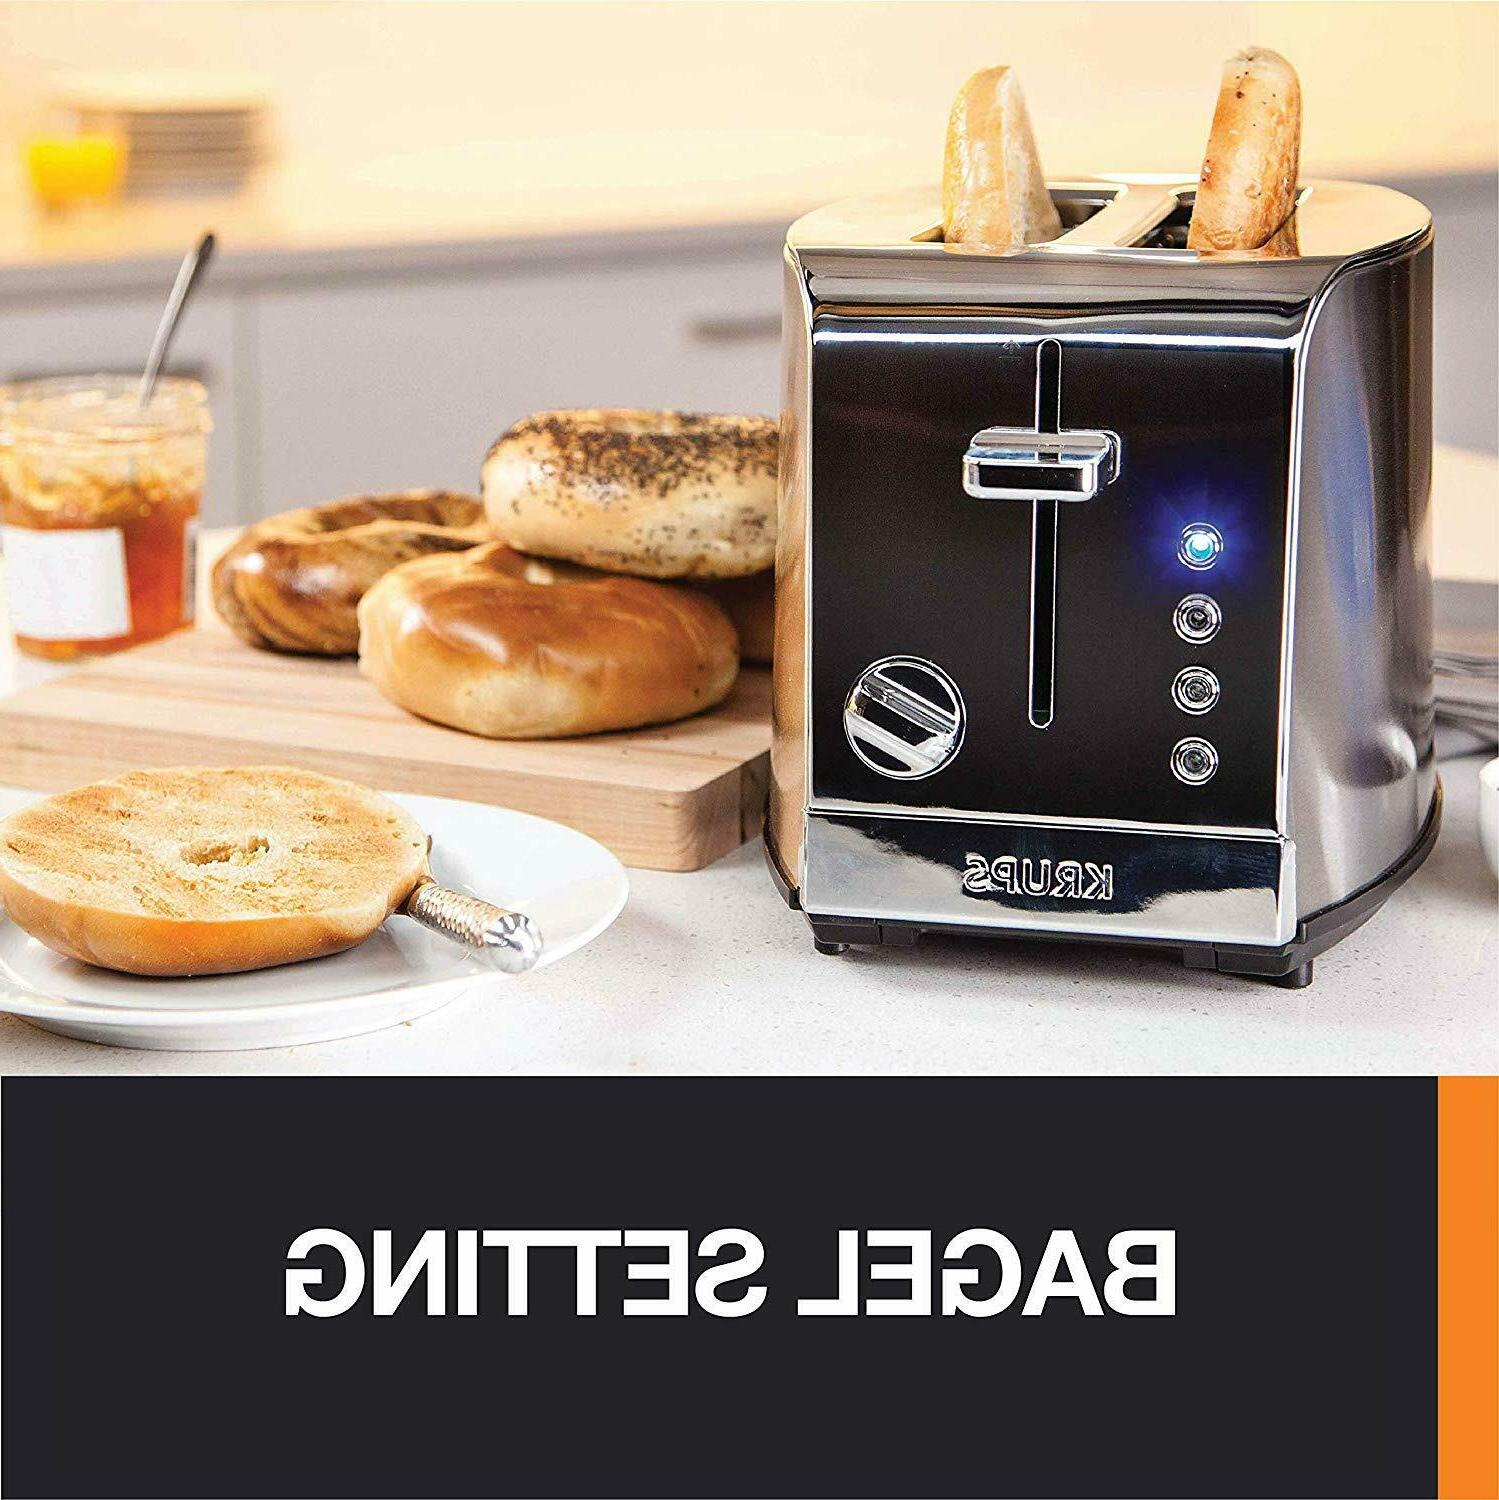 KRUPS KH732D50 Stainless Steel Toaster, 5 Functions with